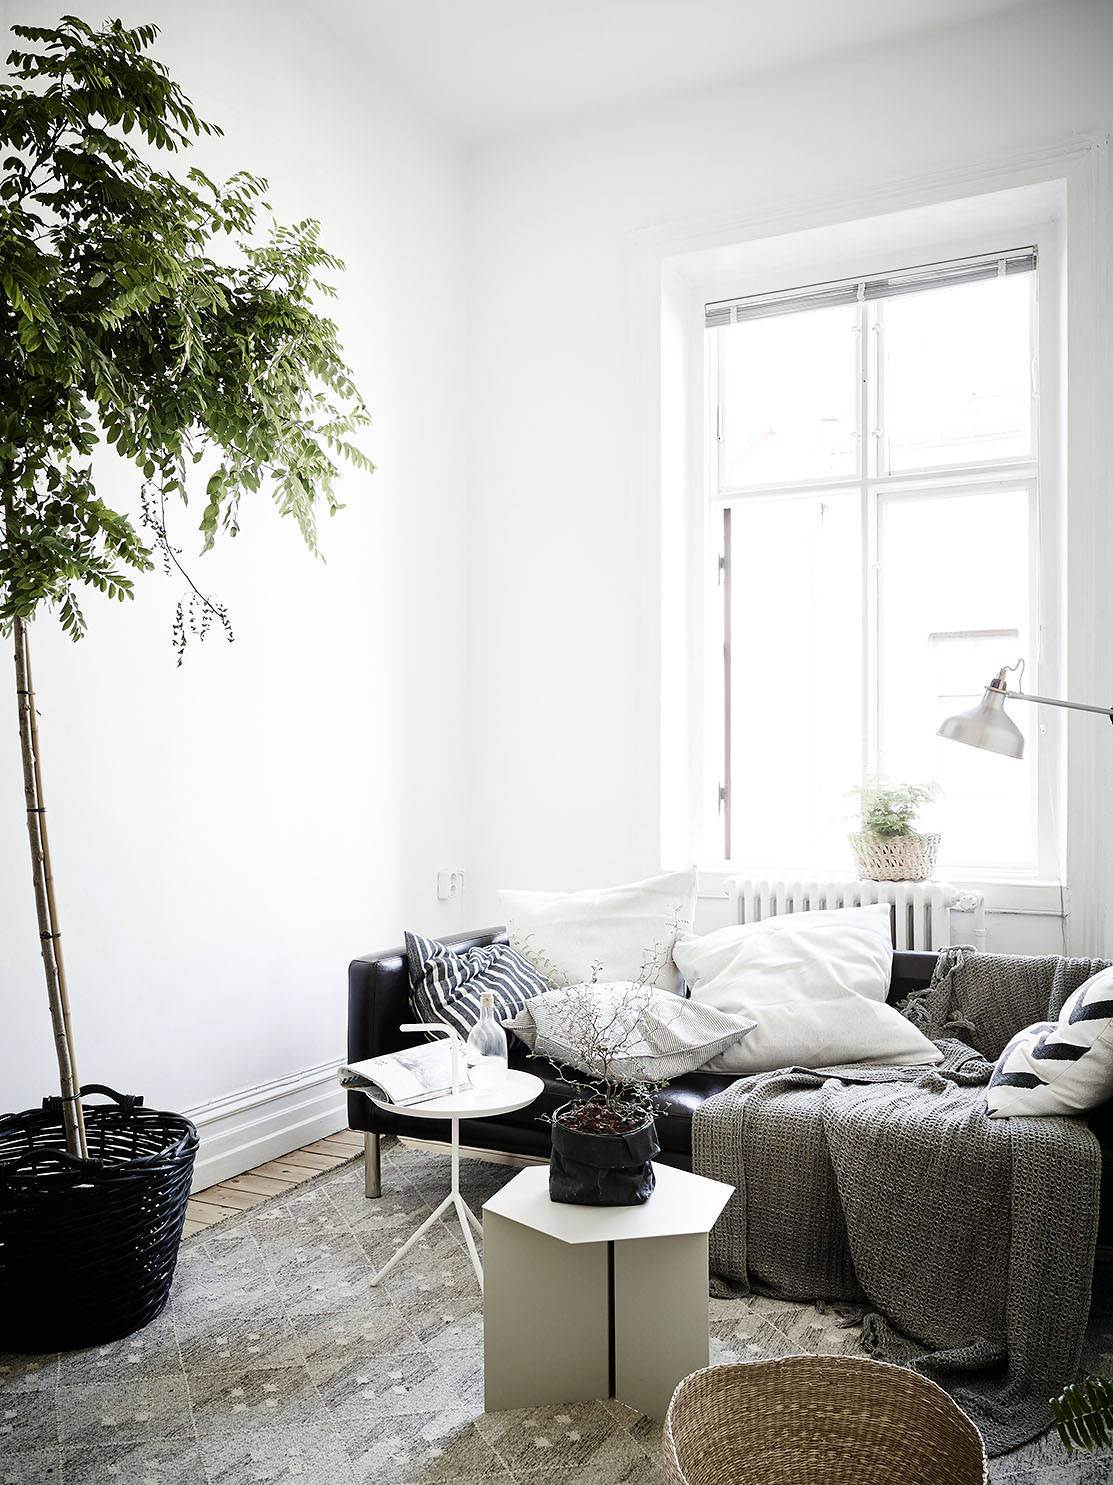 home-tour-green-attitude-salon-canapé-mademoiselle-claudine